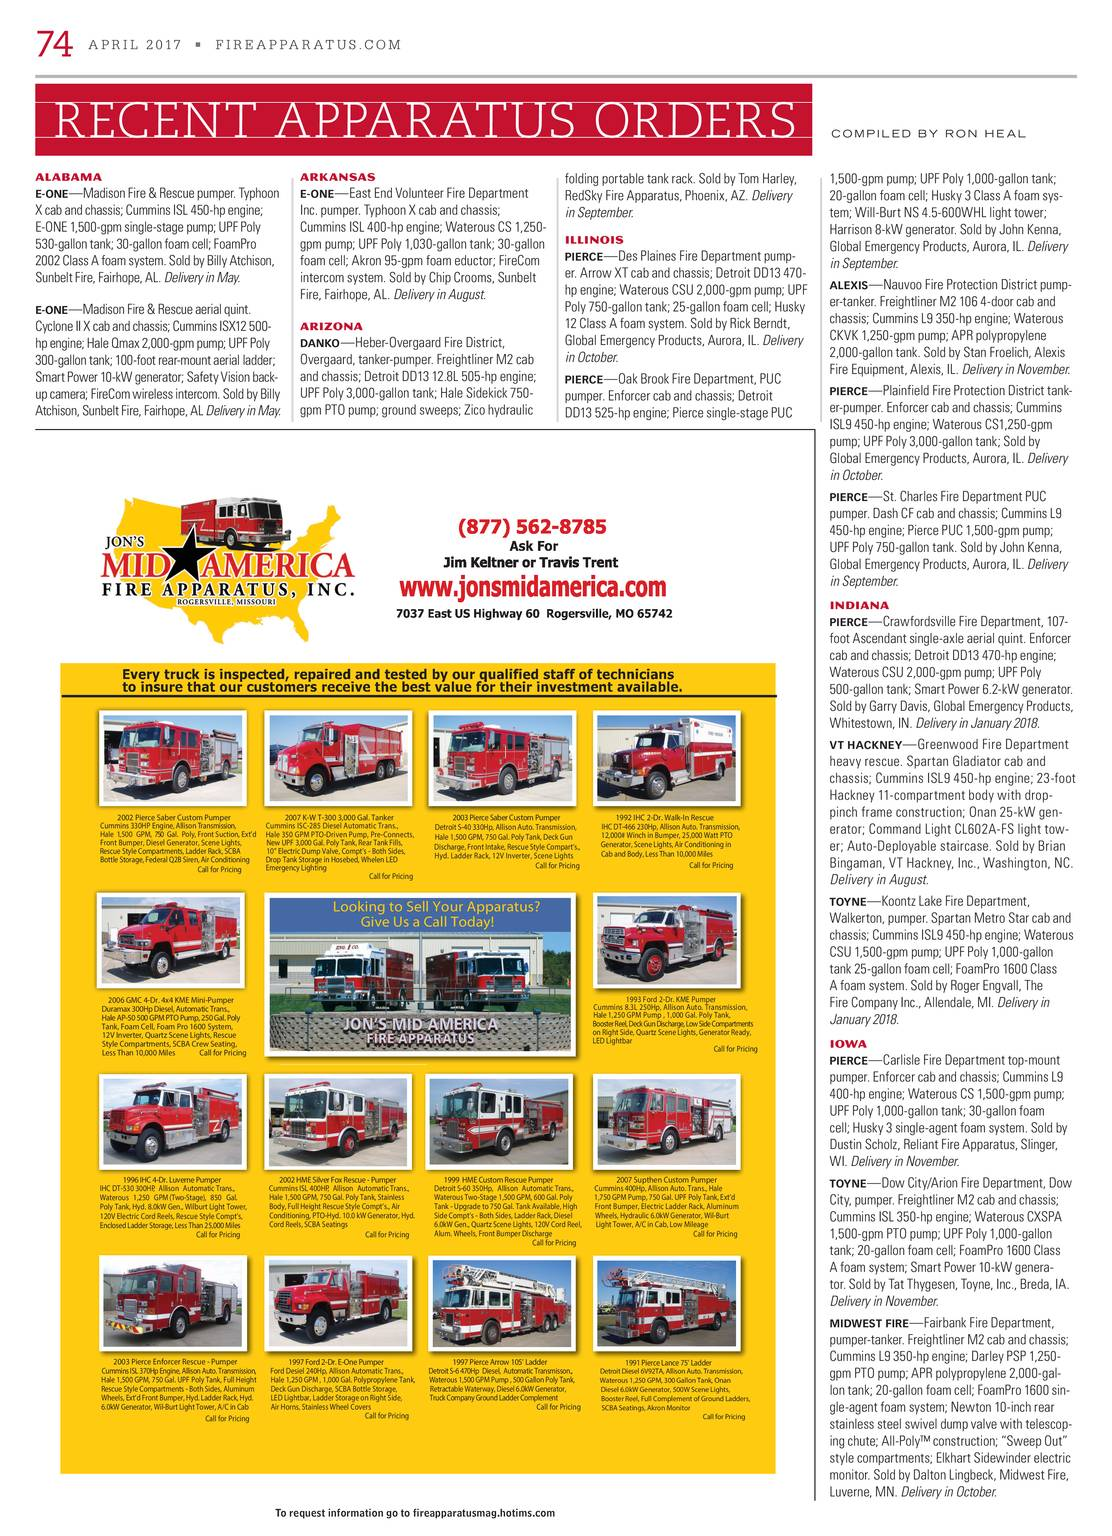 Fire Apparatus Magazine - April 2017 - page 75